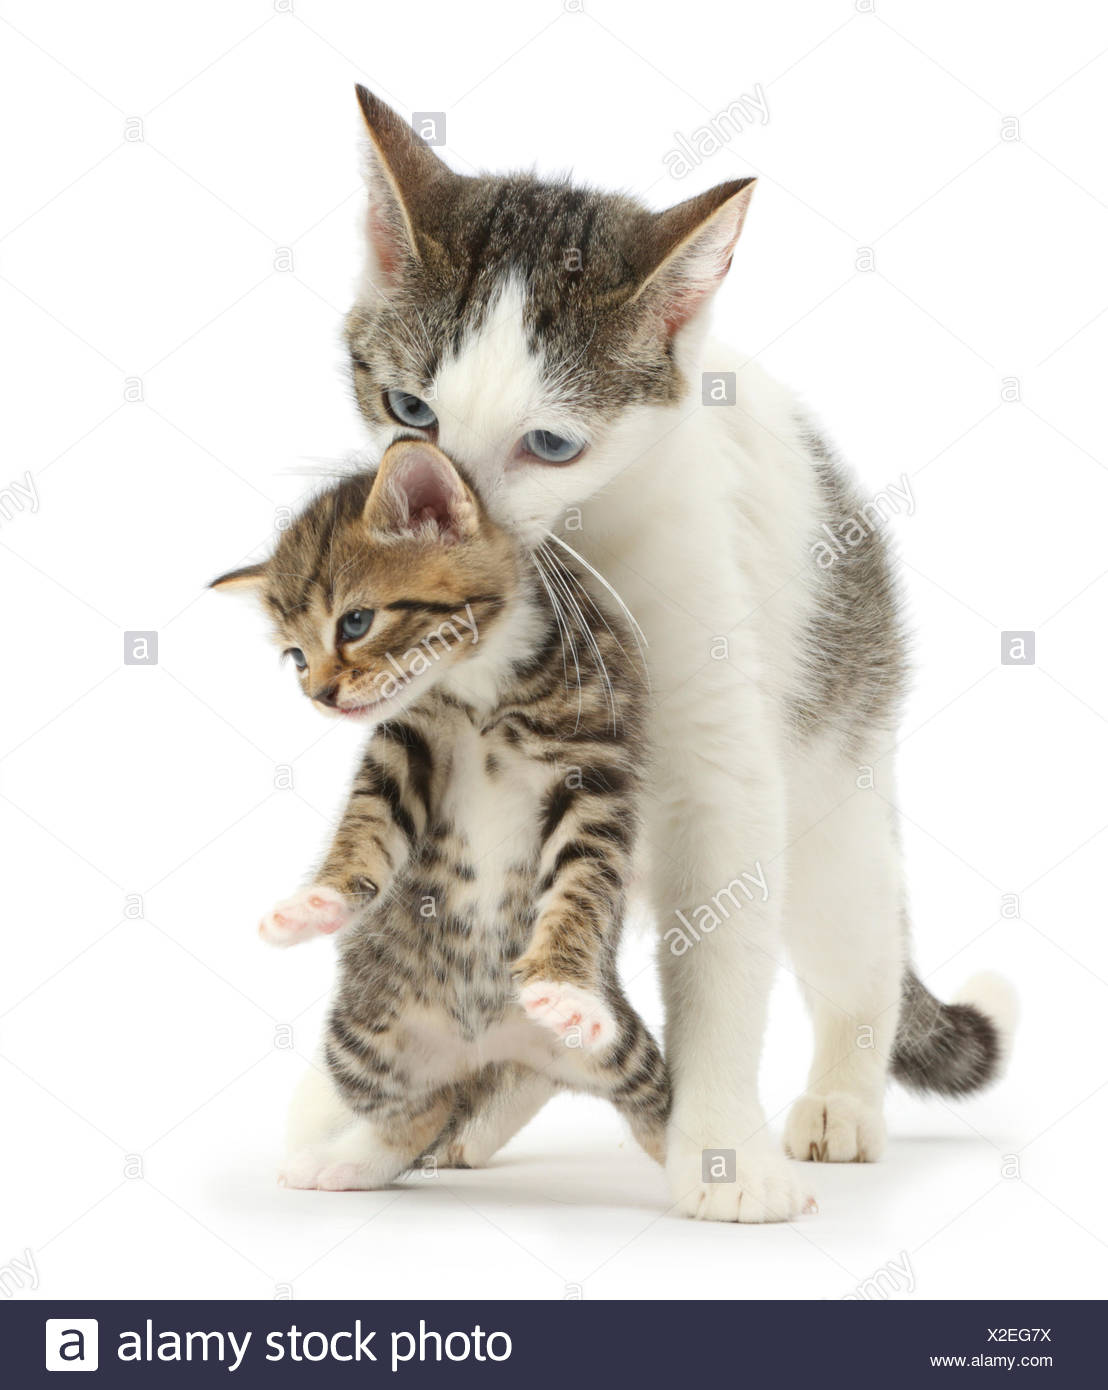 Tabby-and-white Siberian-cross mother cat carrying her tabby kitten, 4 weeks. - Stock Image